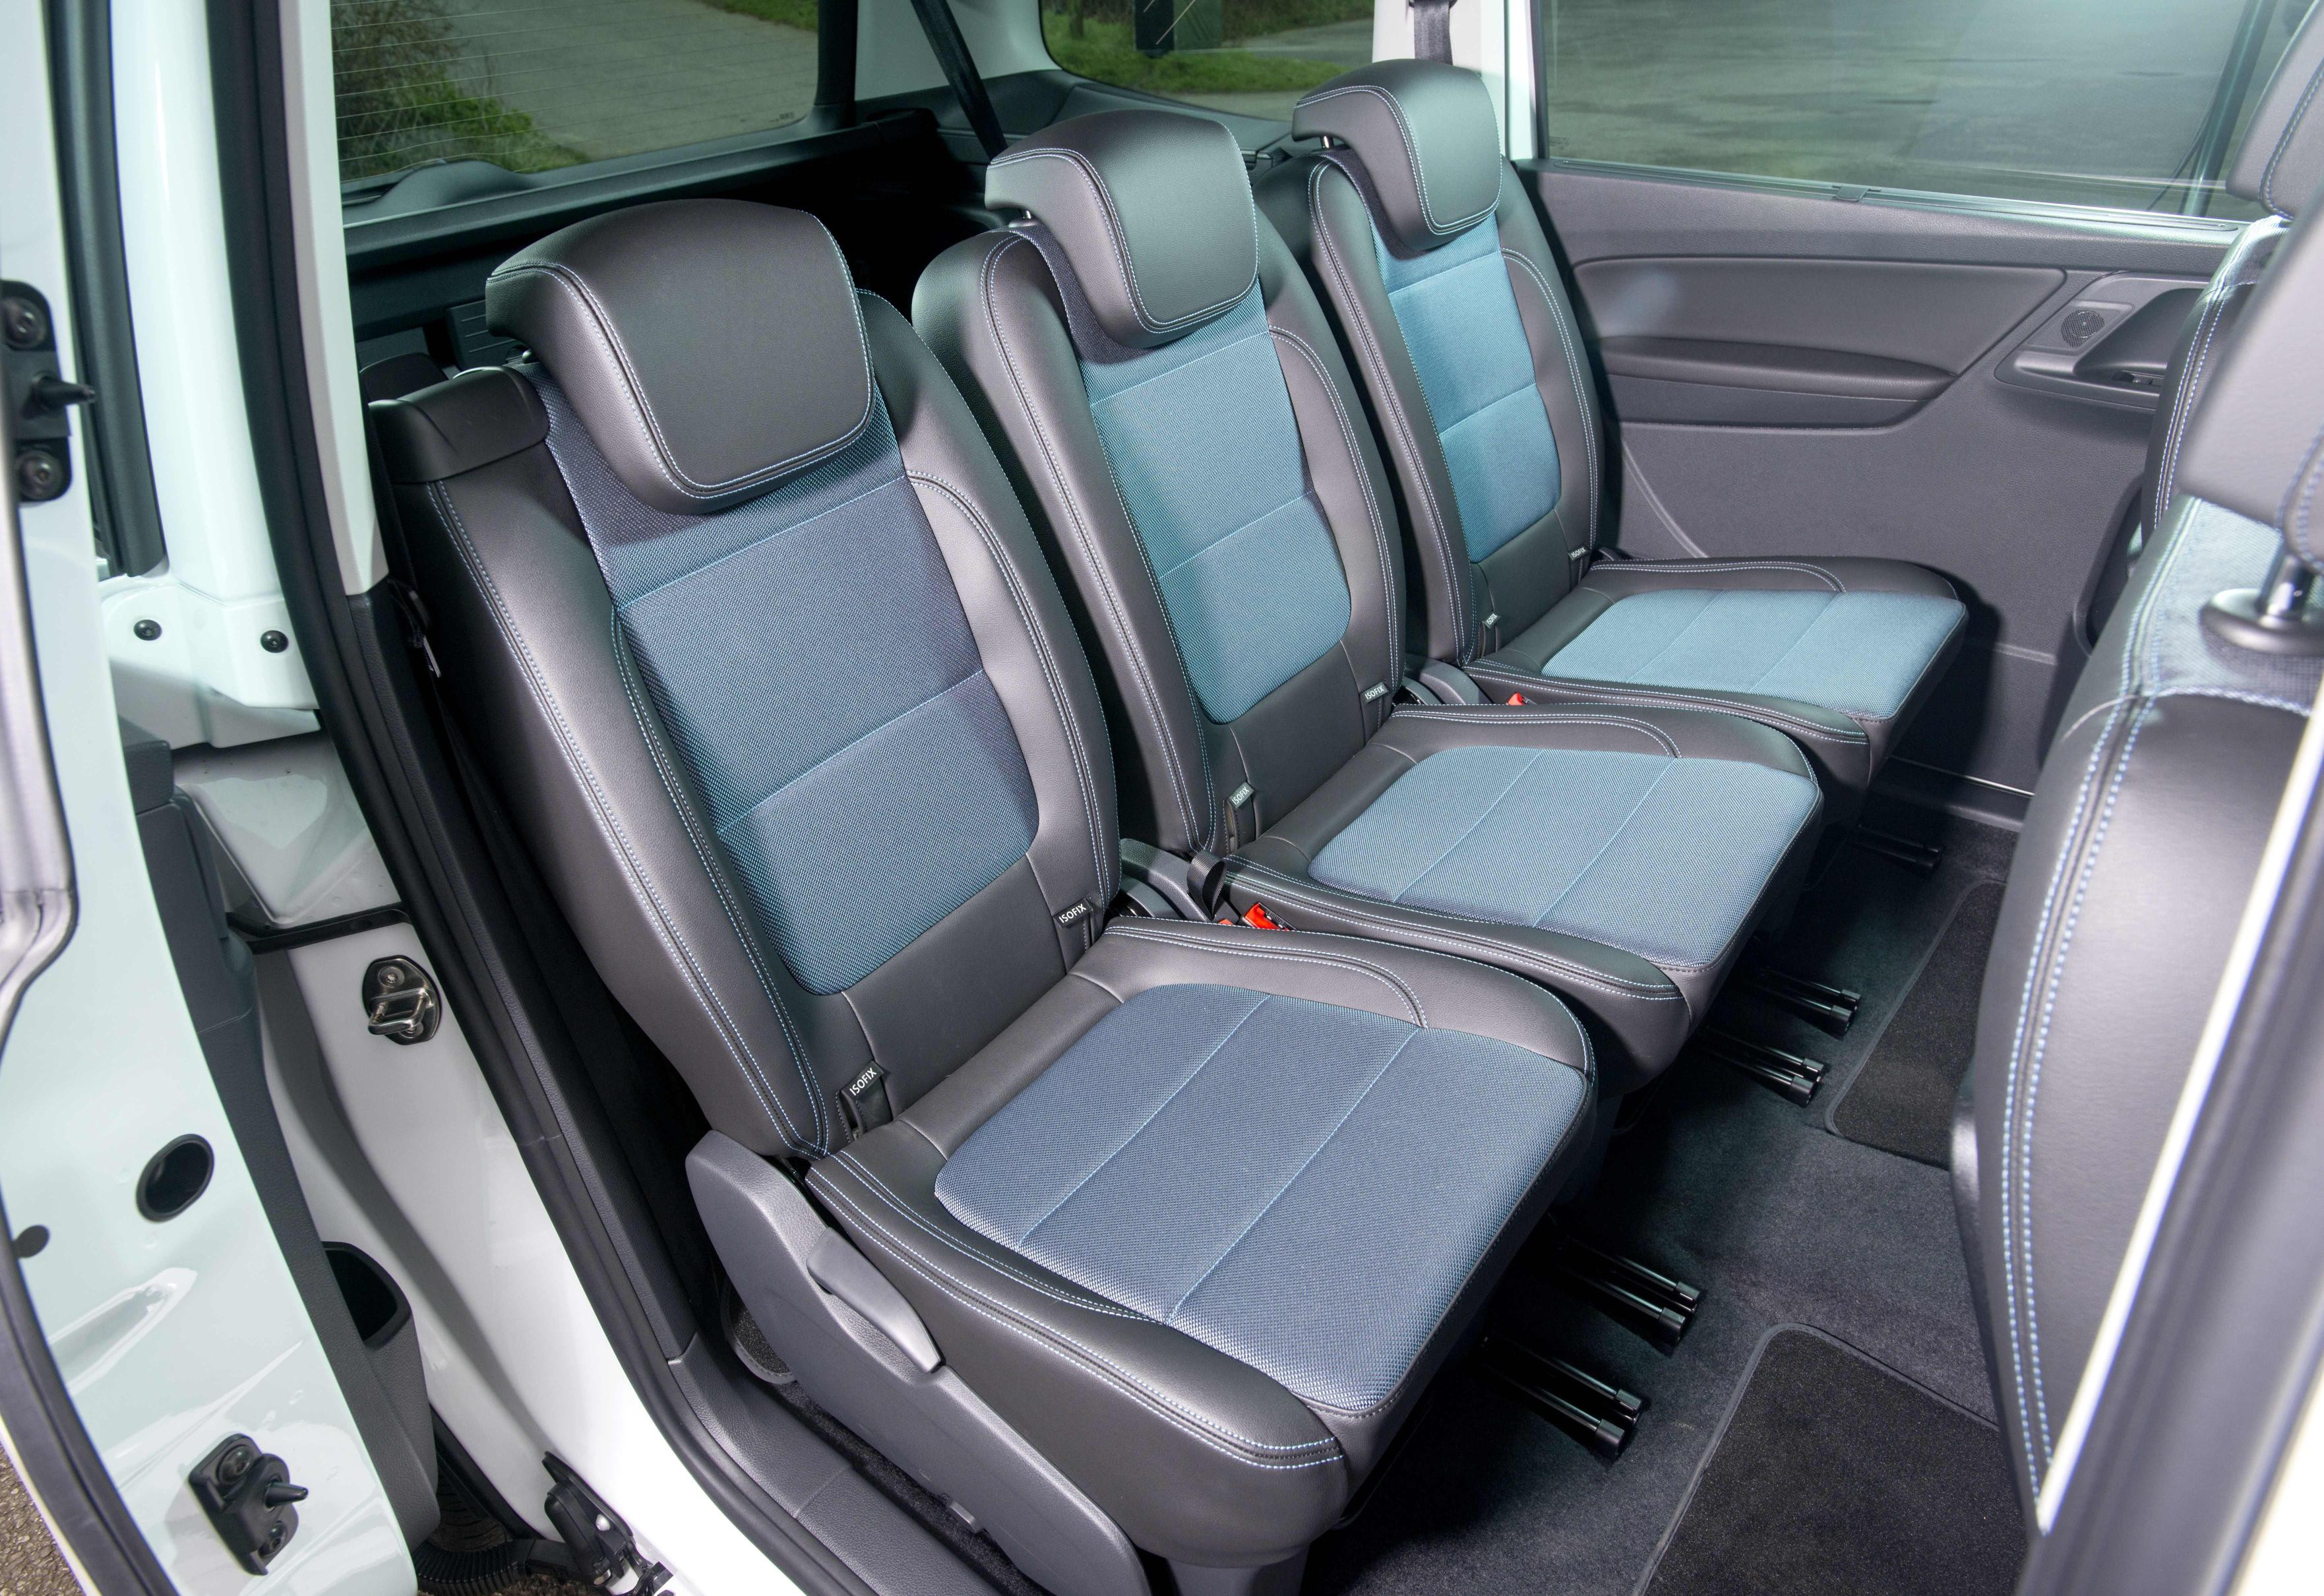 Second row of grey leather and blue fabric seats in SEAT Alhambra